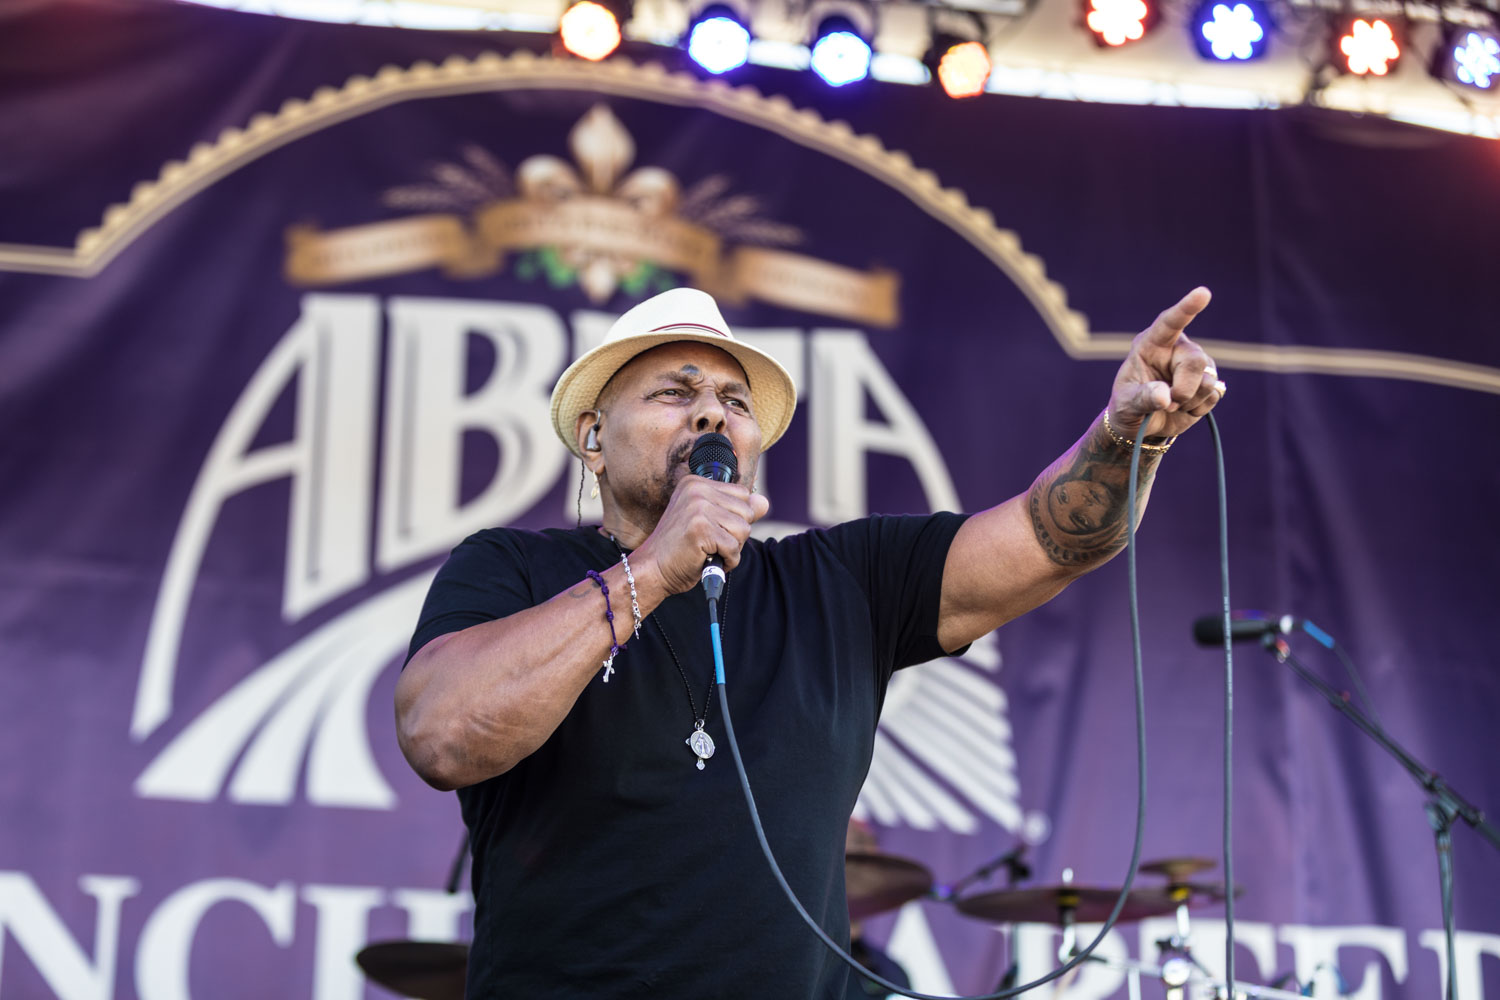 Aaron Neville performs on the Abita Beer Stage, this was his first French Quarter Fest show.